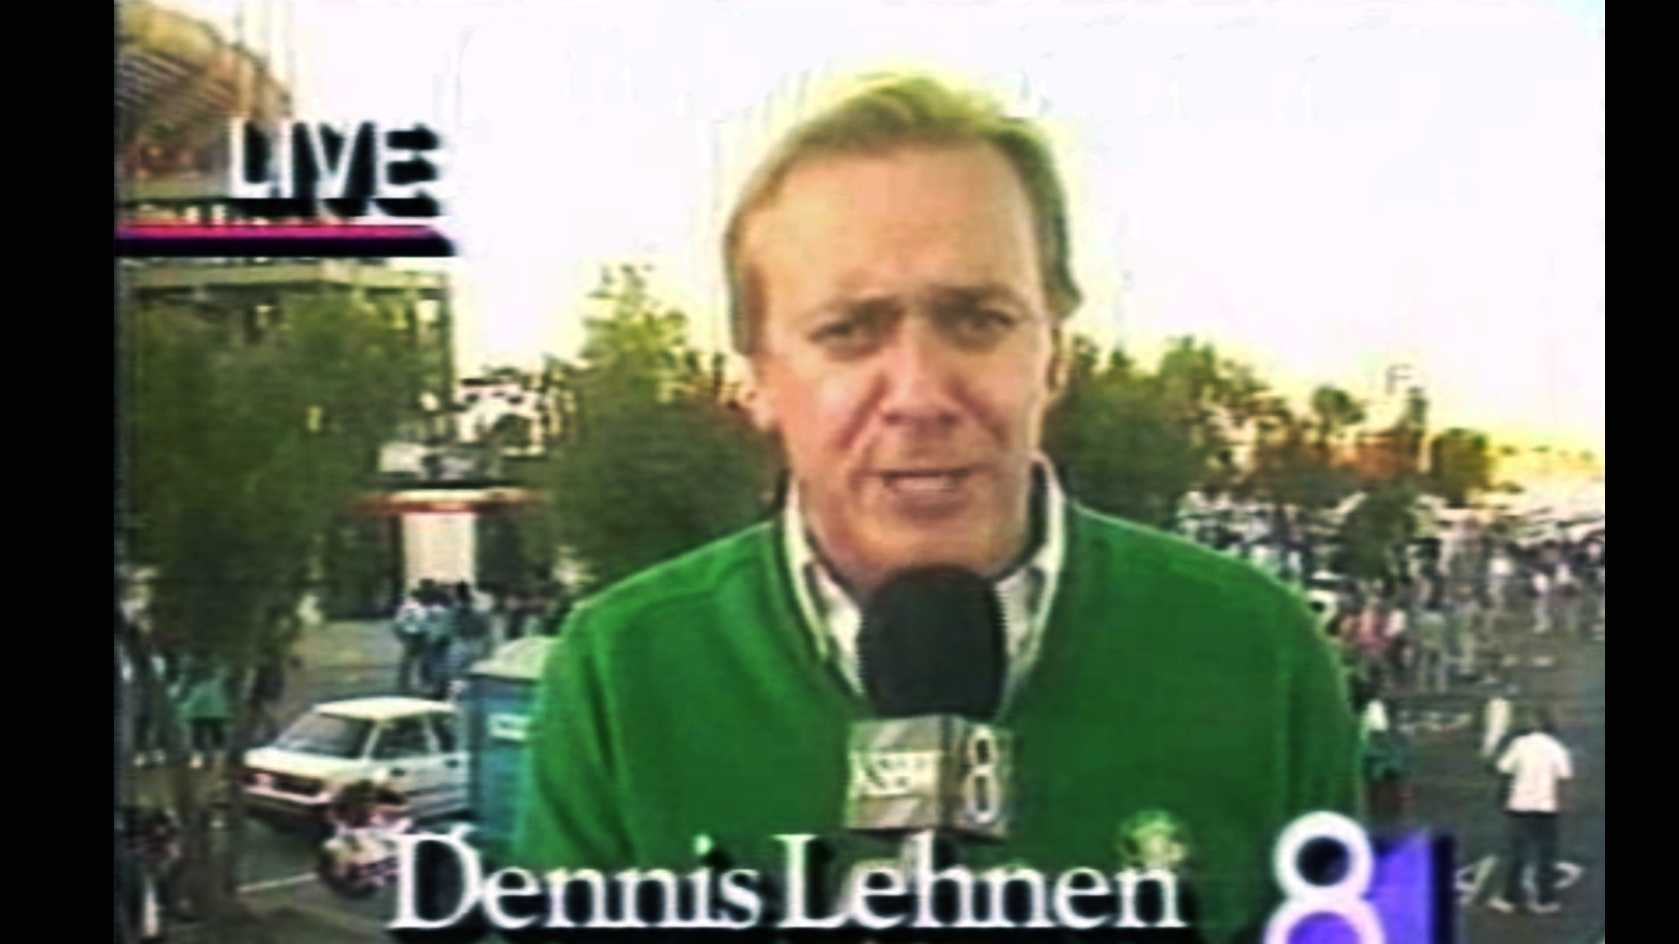 Dennis Lehnen is seen here minutes before the 1989 Loma Prieta Earthquake hit.